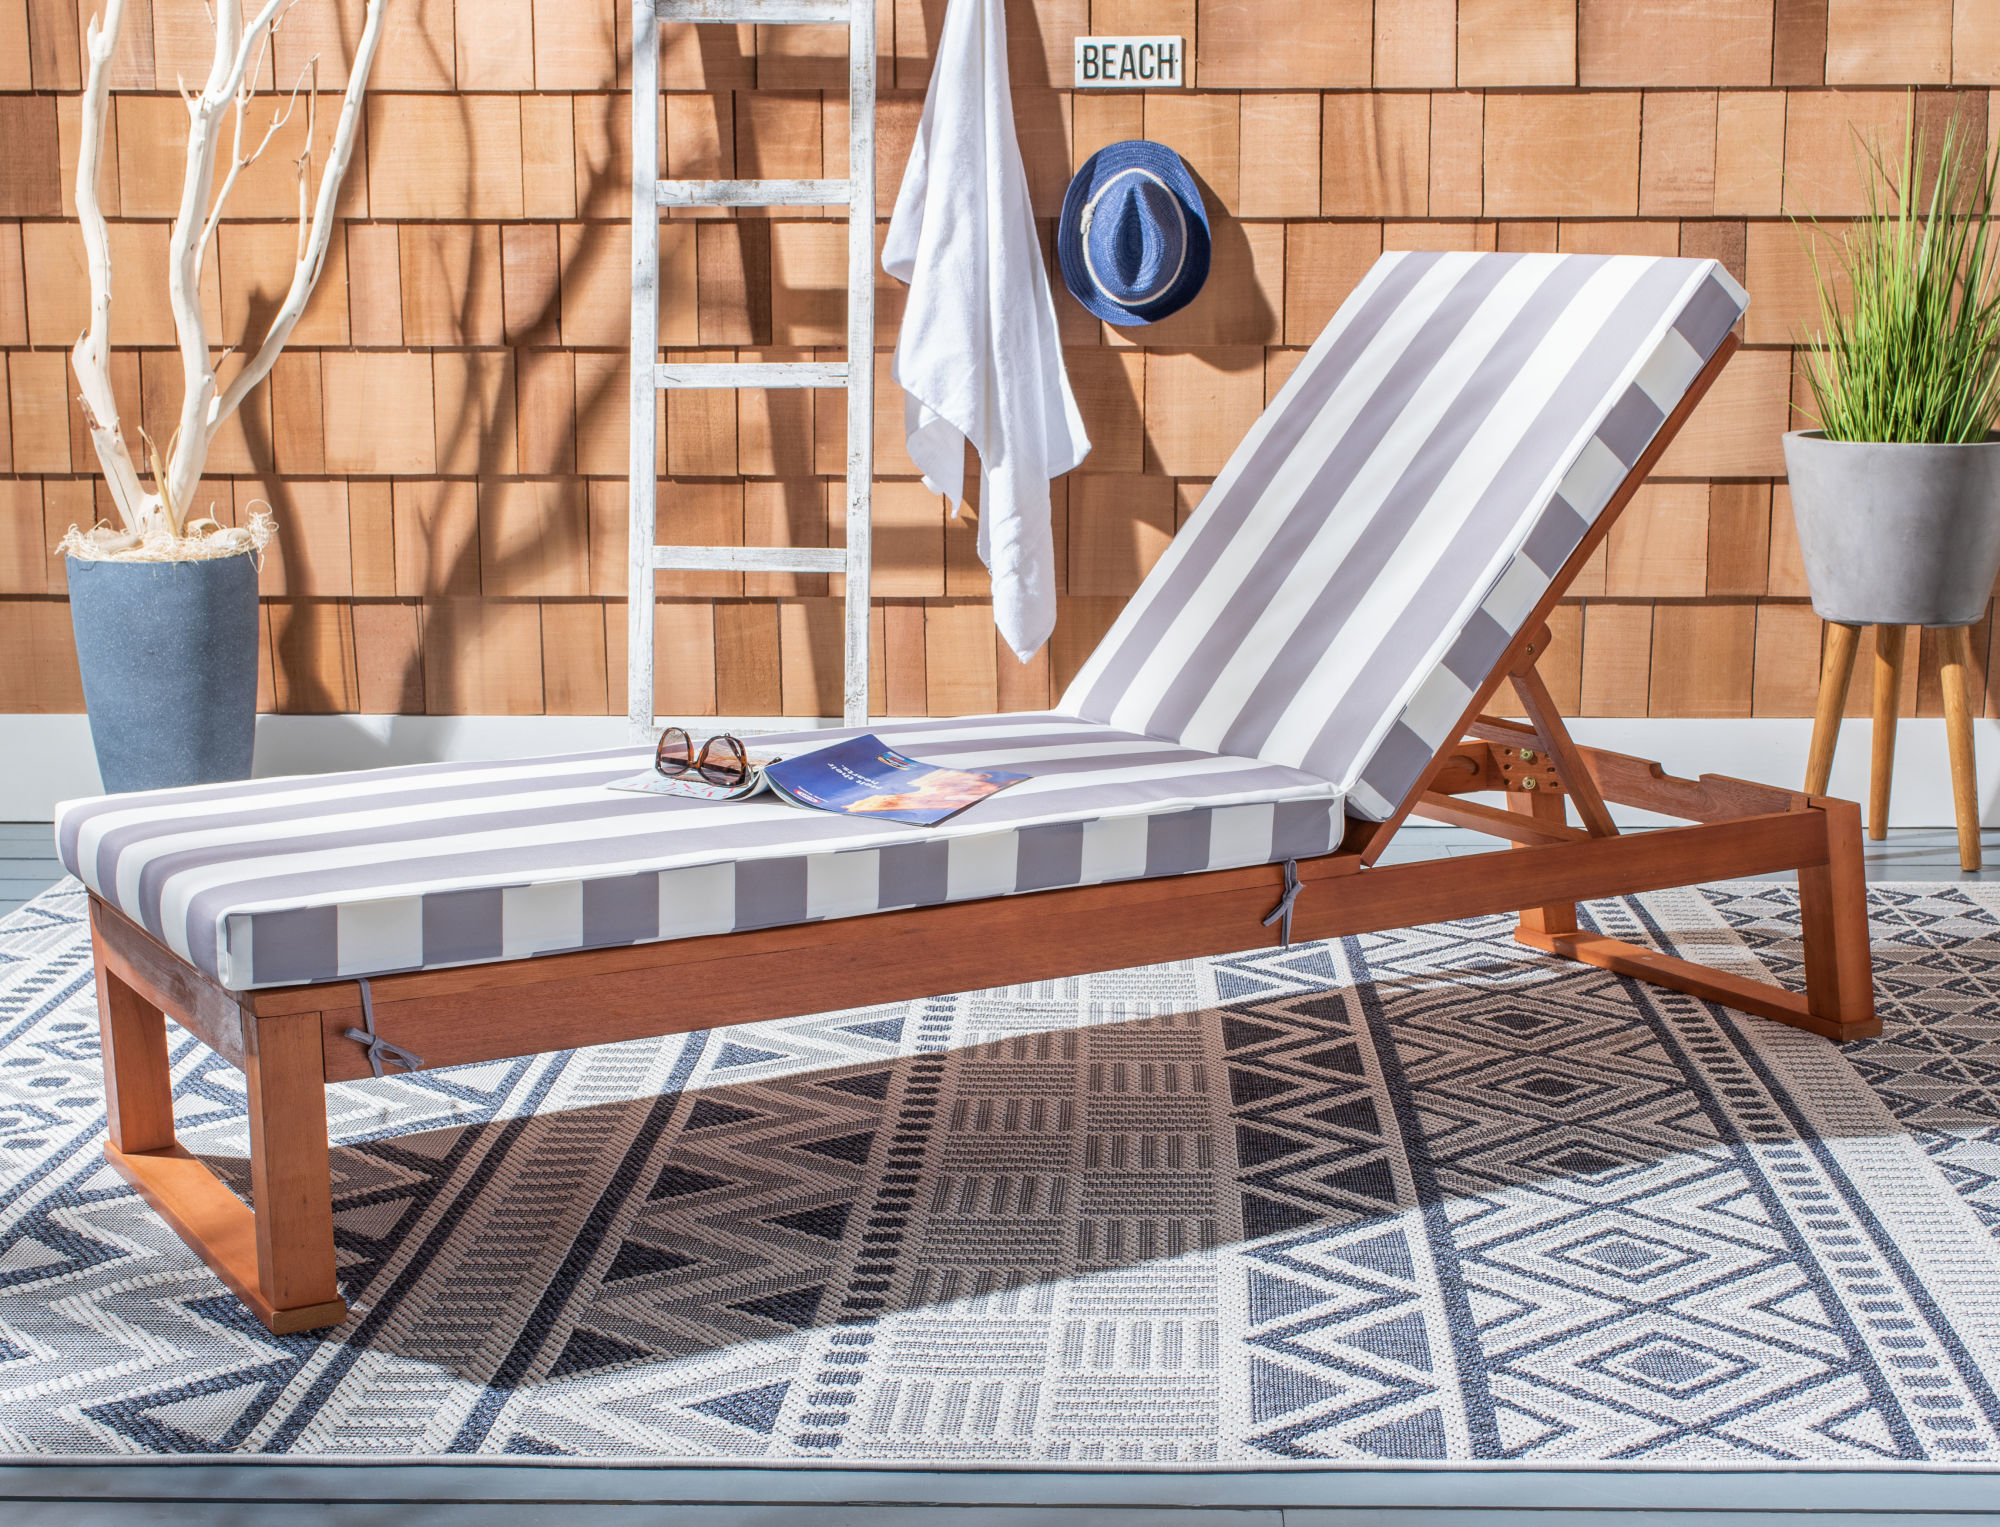 Solano Sunlounger on Safavieh Outdoor Living Solano Sunlounger id=83798